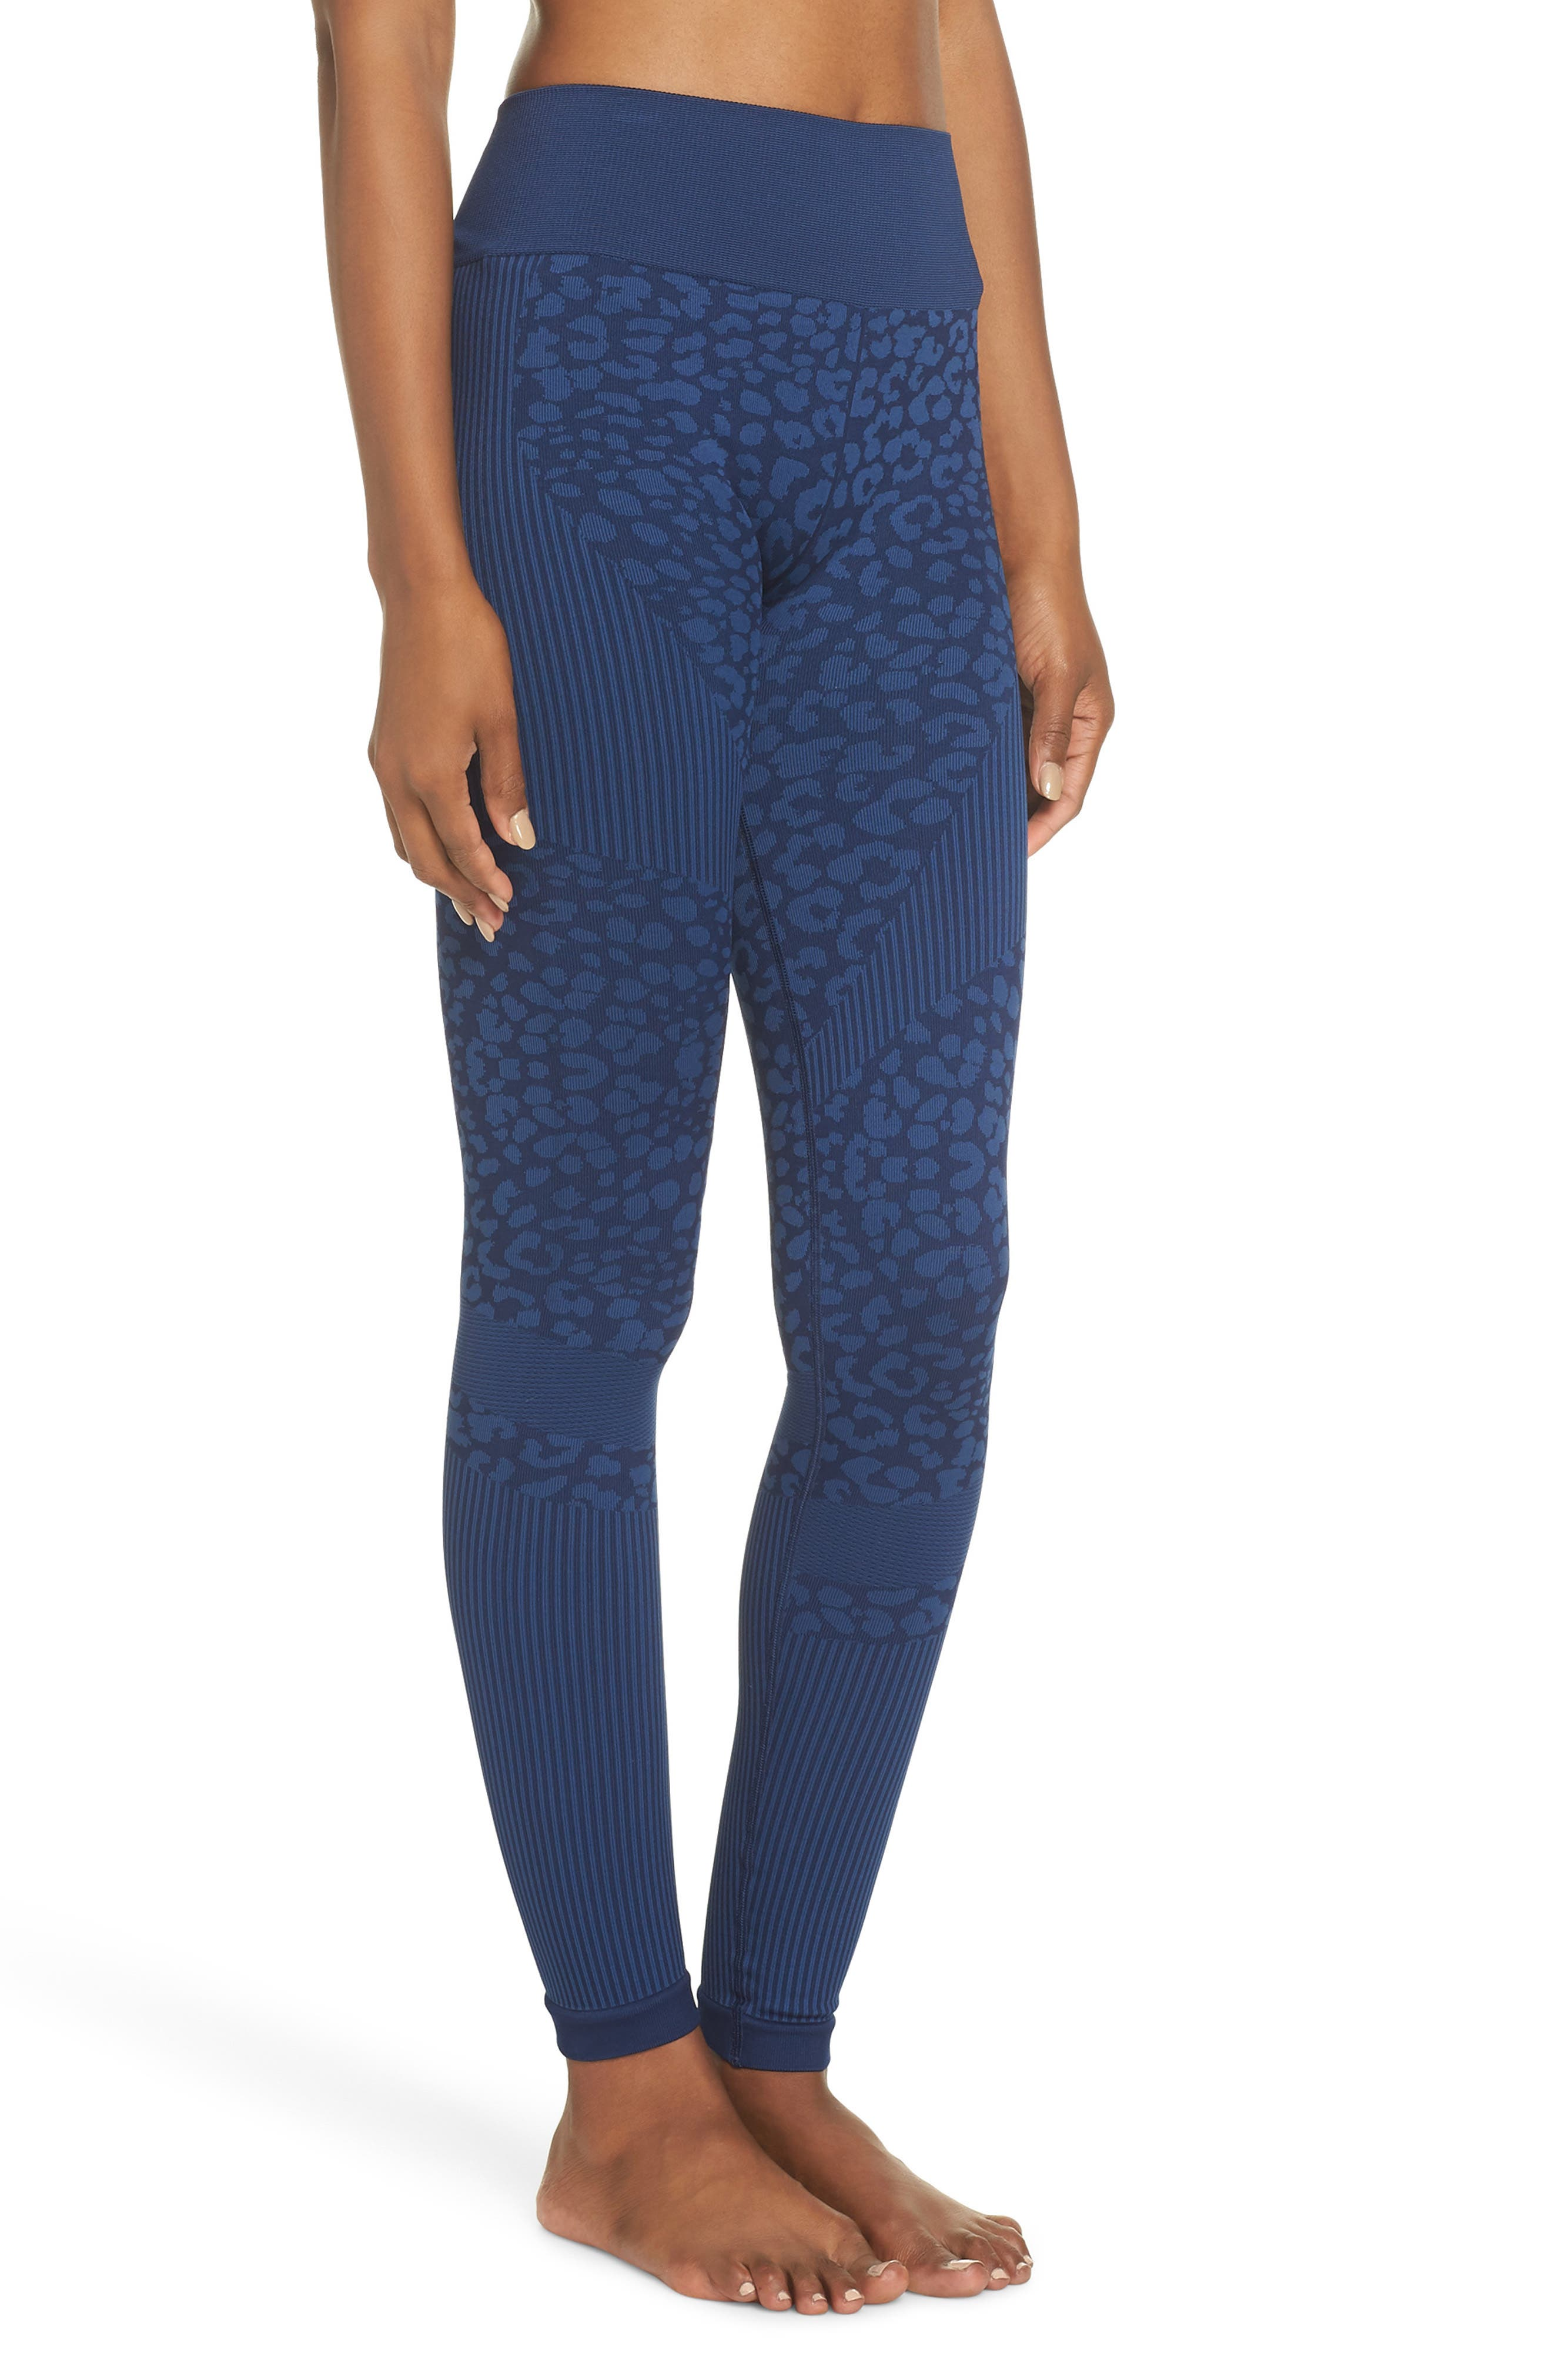 Quincy Seamless Leggings,                             Alternate thumbnail 3, color,                             NAVY LEOPARD